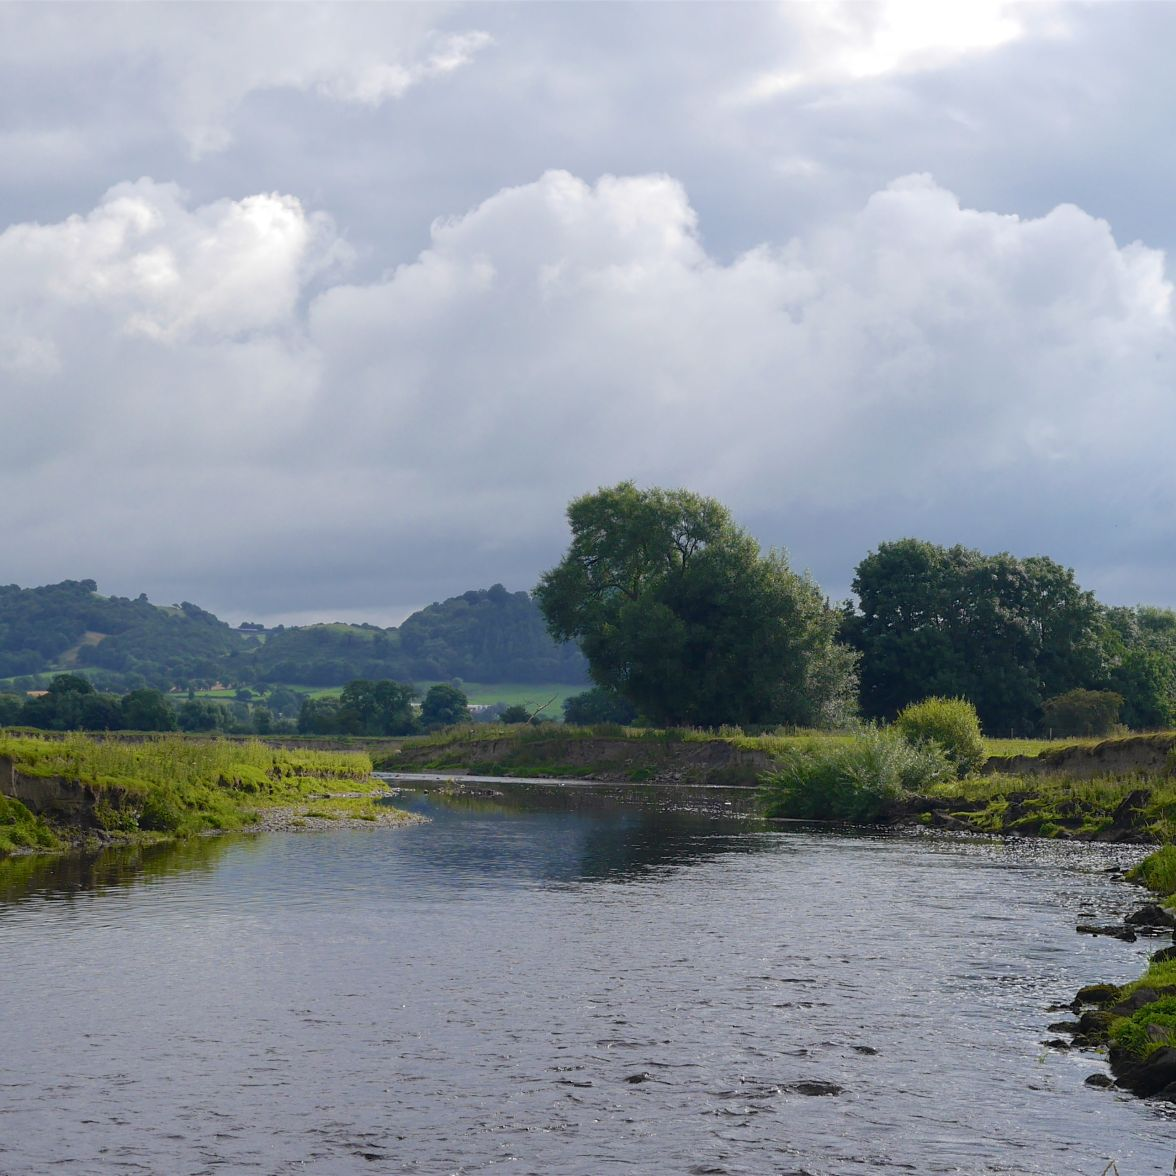 The River Severn in mid-Wales